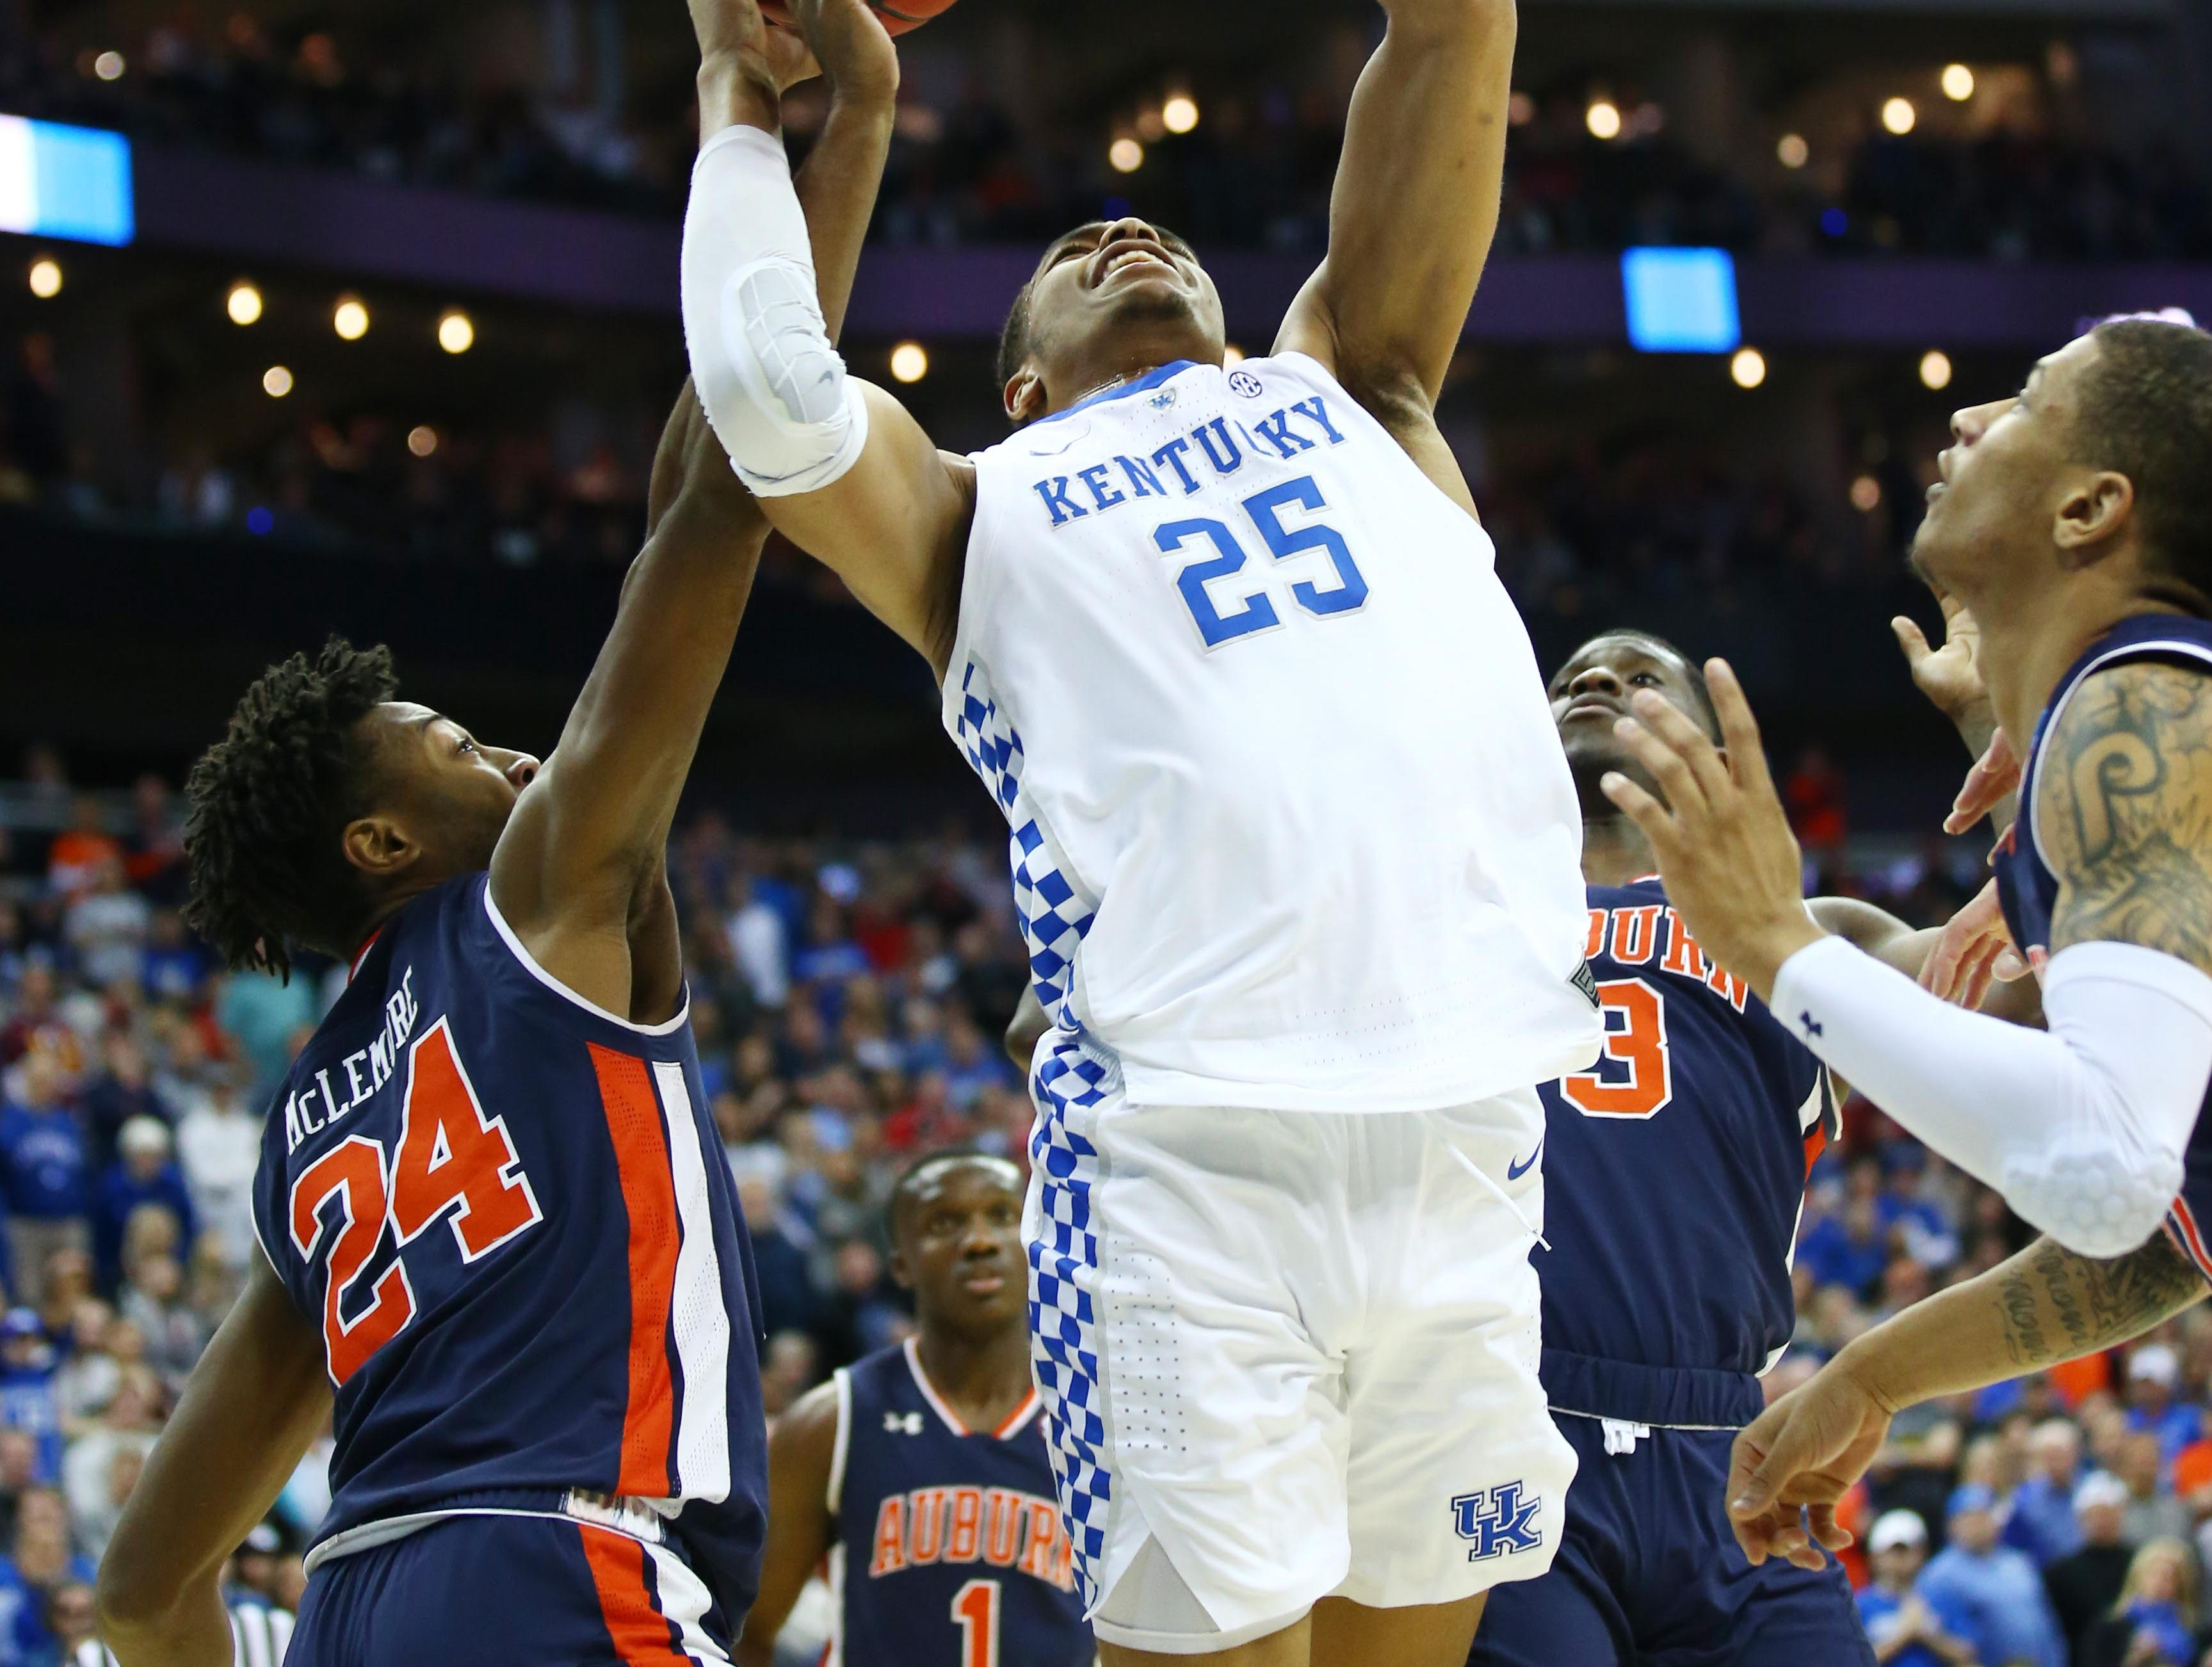 Mar 31, 2019; Kansas City, MO, United States; Kentucky Wildcats forward PJ Washington (25) shoots against Auburn Tigers forward Anfernee McLemore (24) during the second half in the championship game of the midwest regional of the 2019 NCAA Tournament at Sprint Center. Mandatory Credit: Jay Biggerstaff-USA TODAY Sports